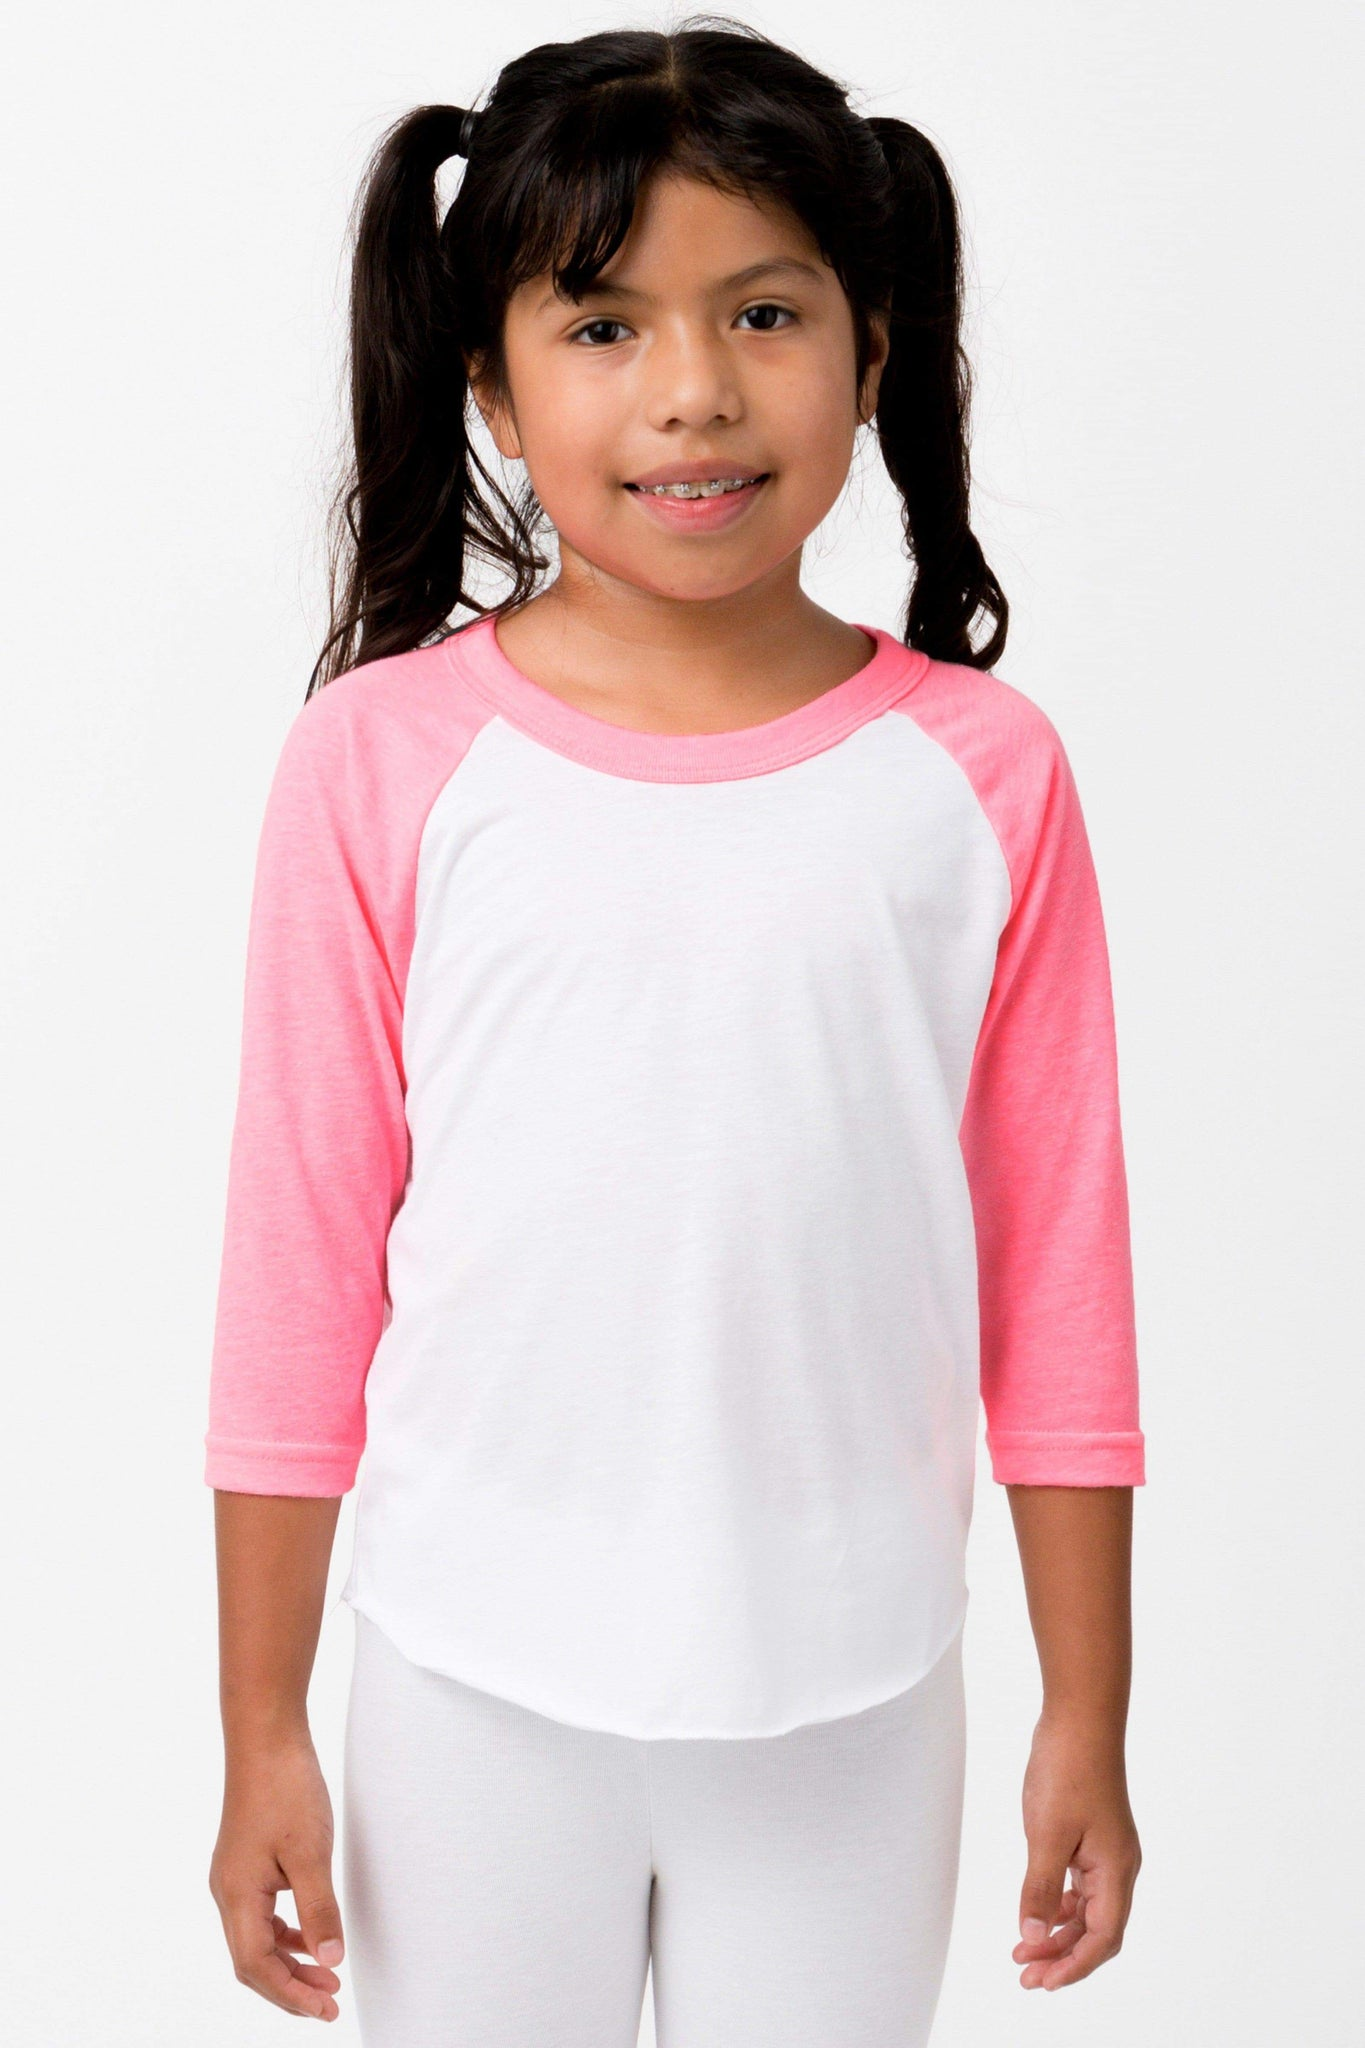 FF2053 - Youth 3/4 Sleeve Poly Cotton Raglan